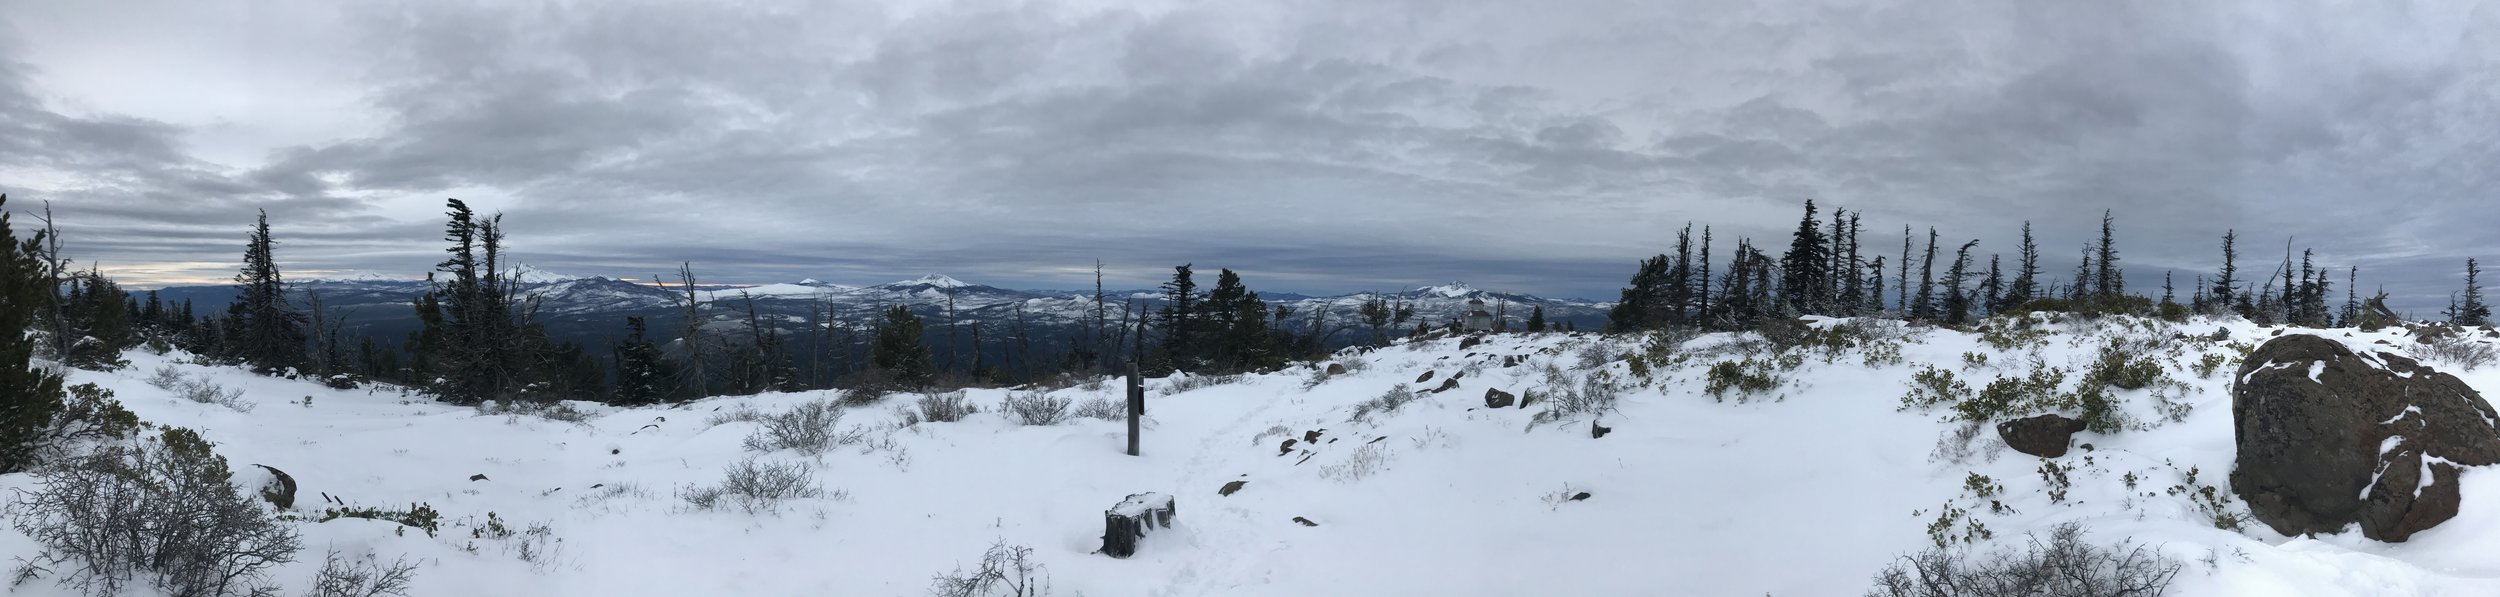 Knee deep snow, gray skies, and a howling wind from the top of Black Butte.